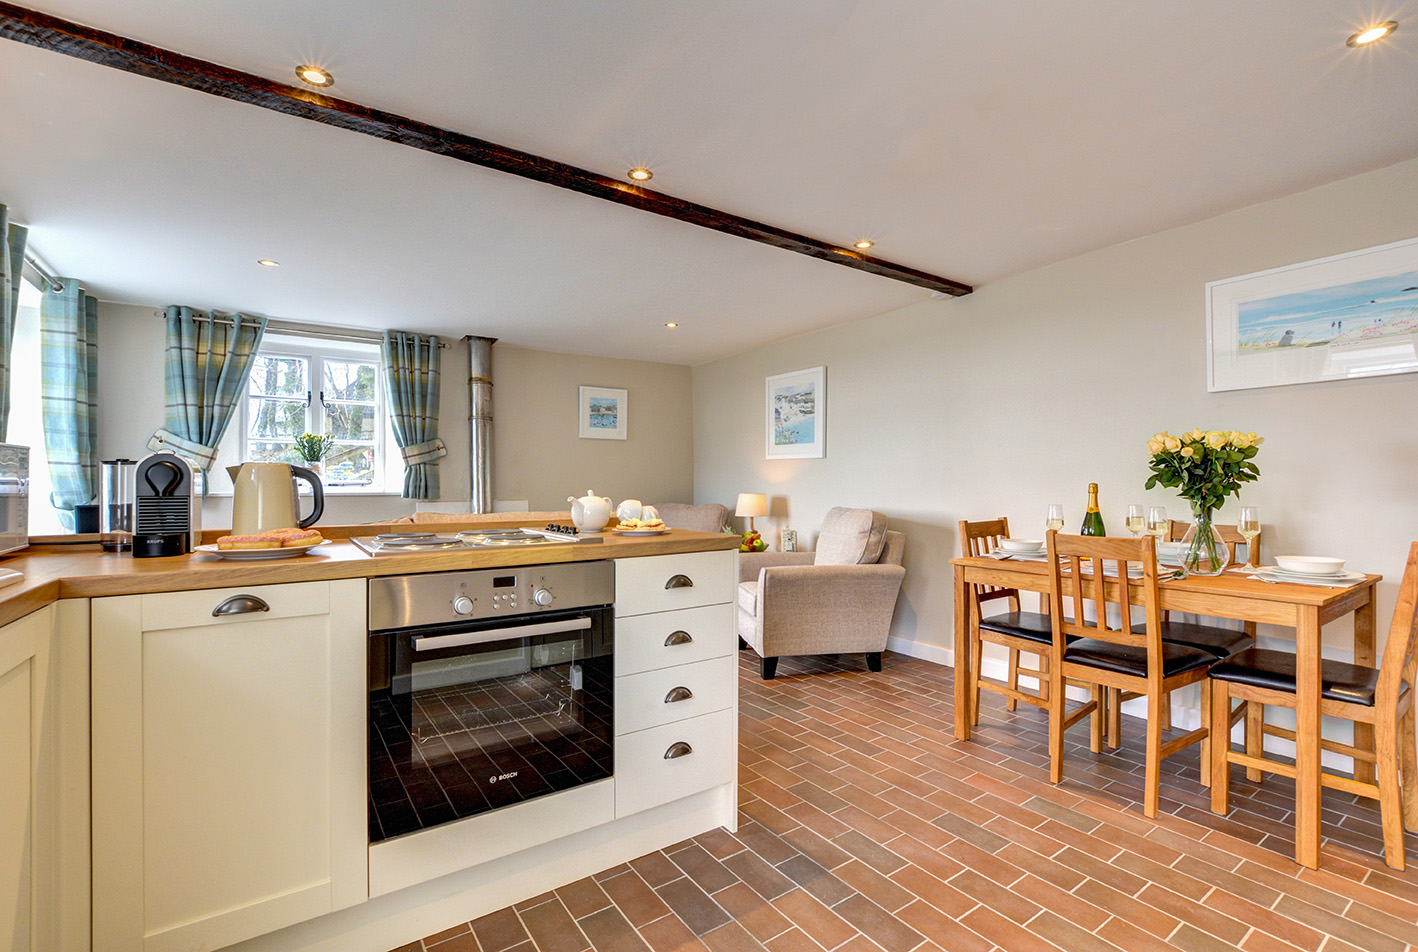 The dining area and kitchen of Butterwell luxury self catering converted barn holiday cottage at Penrose Burden in North Cornwall 02.jpg